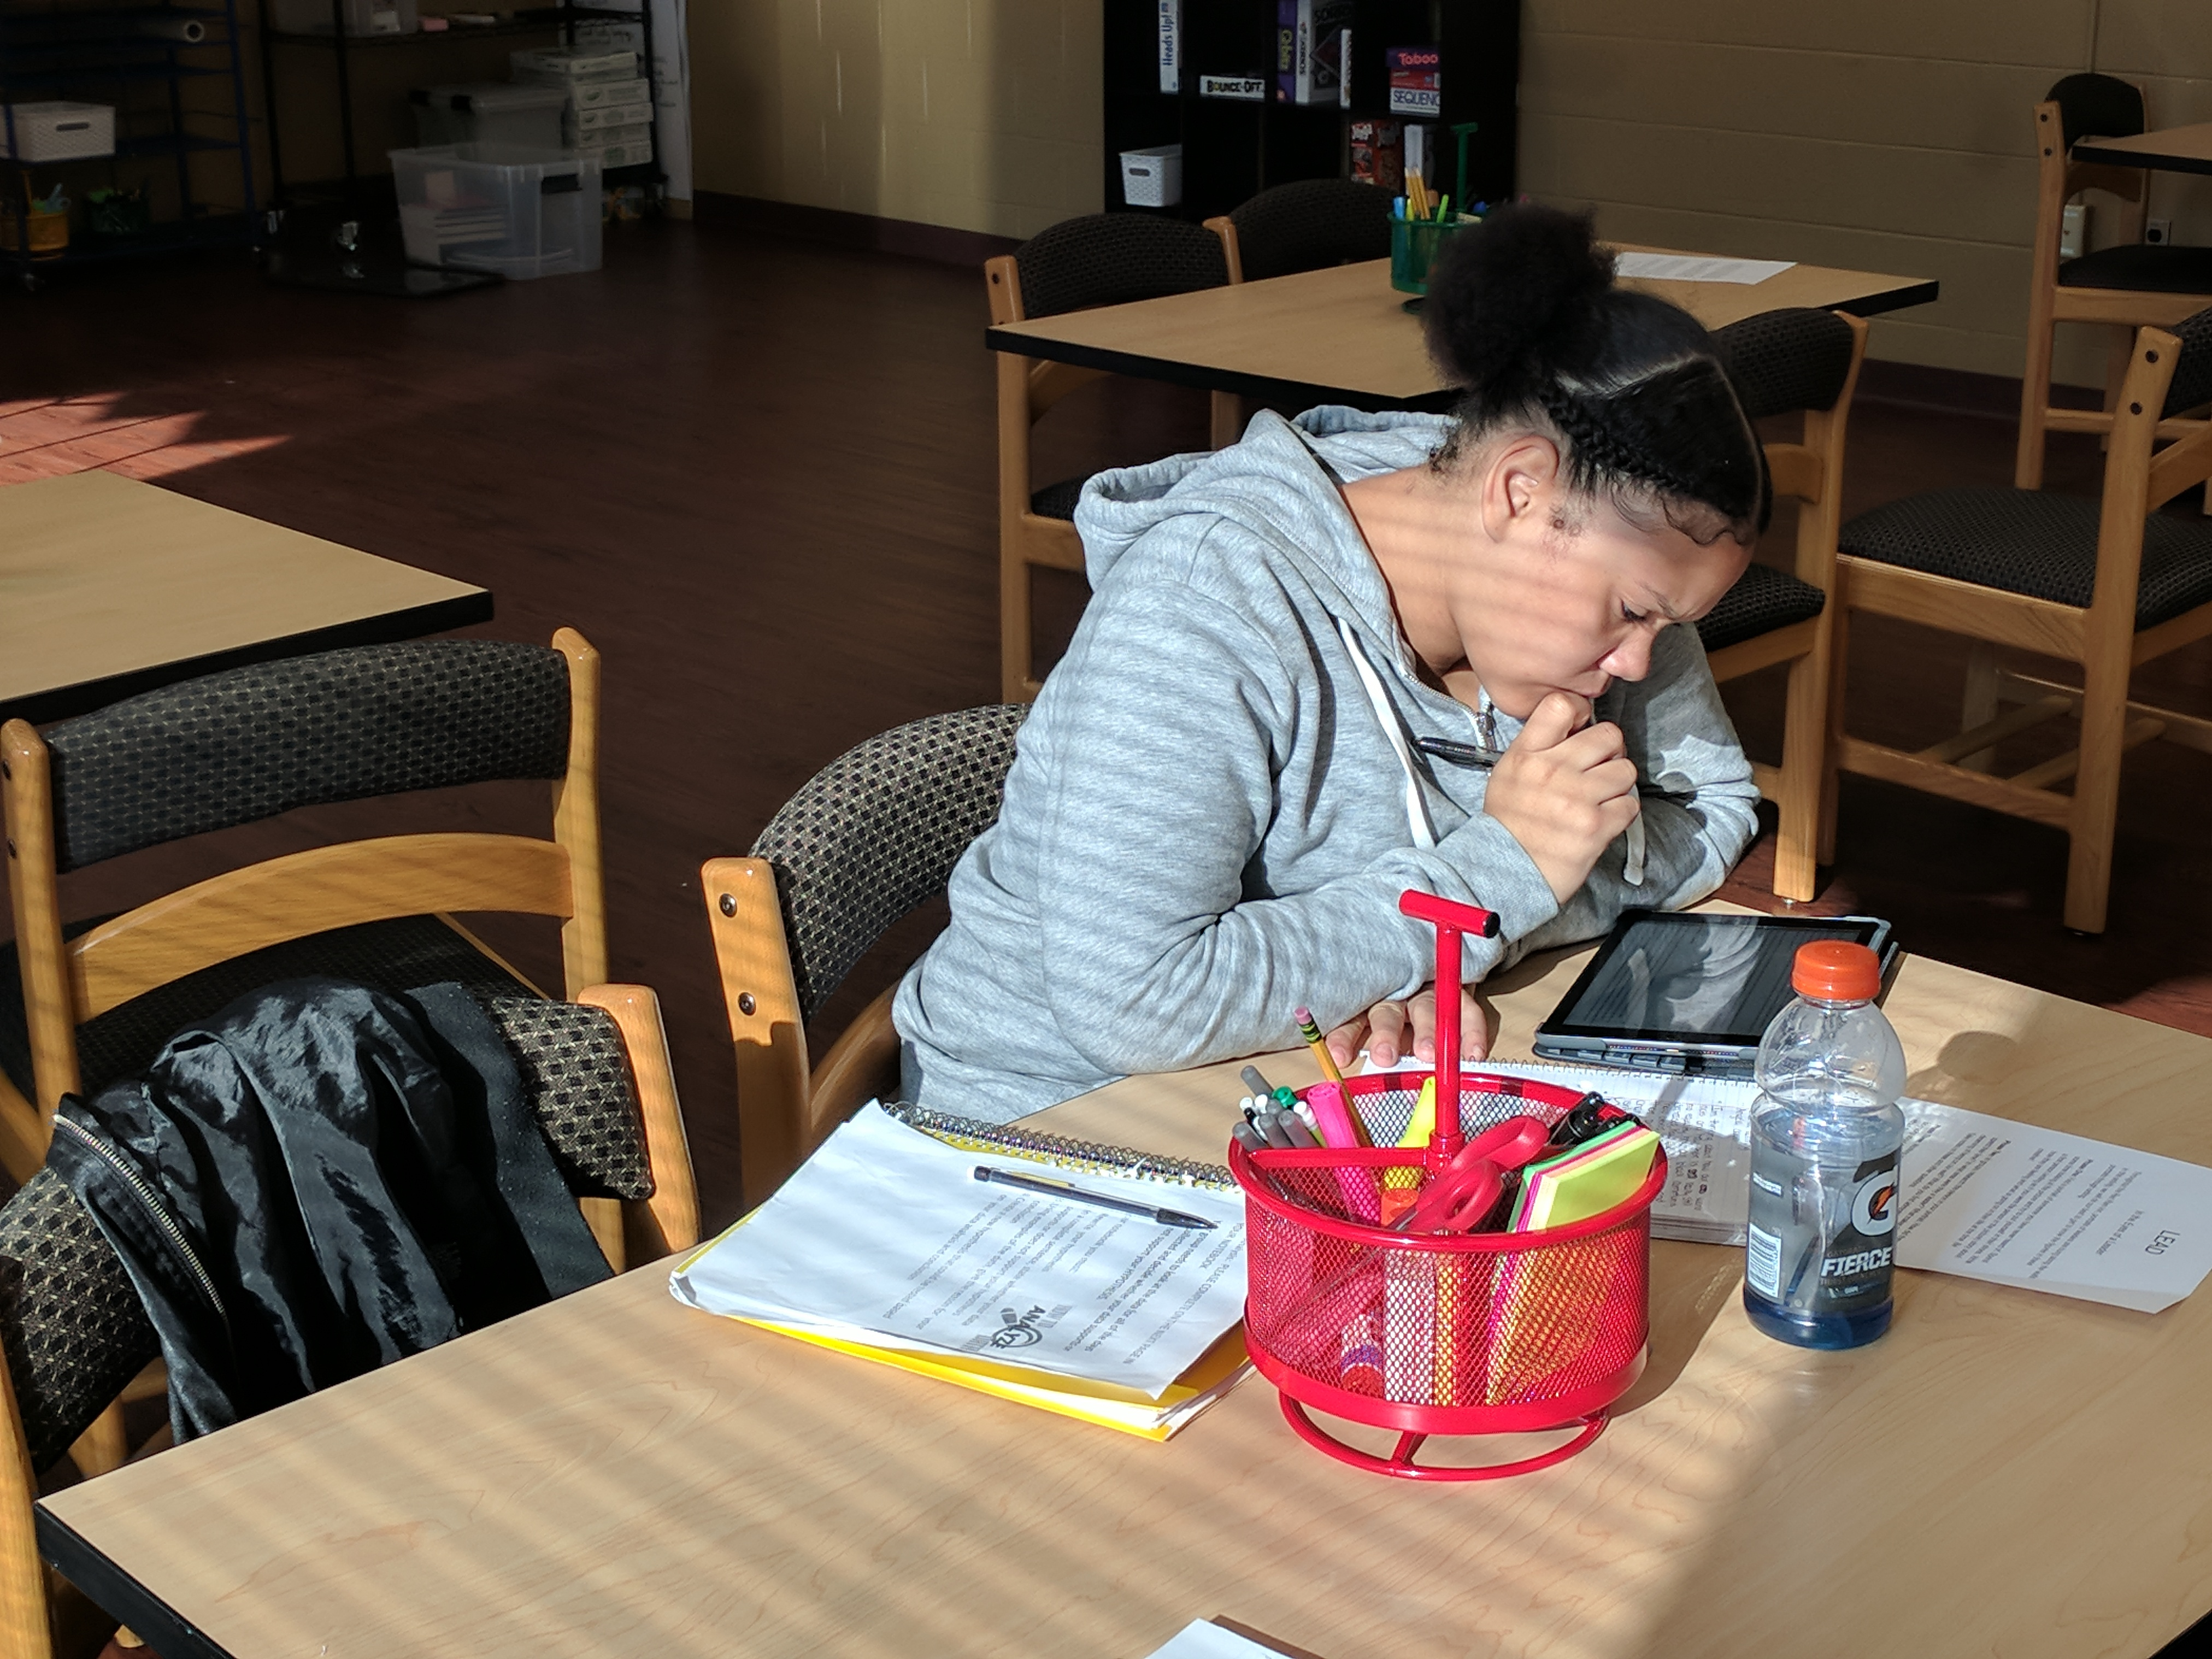 A student hard at work